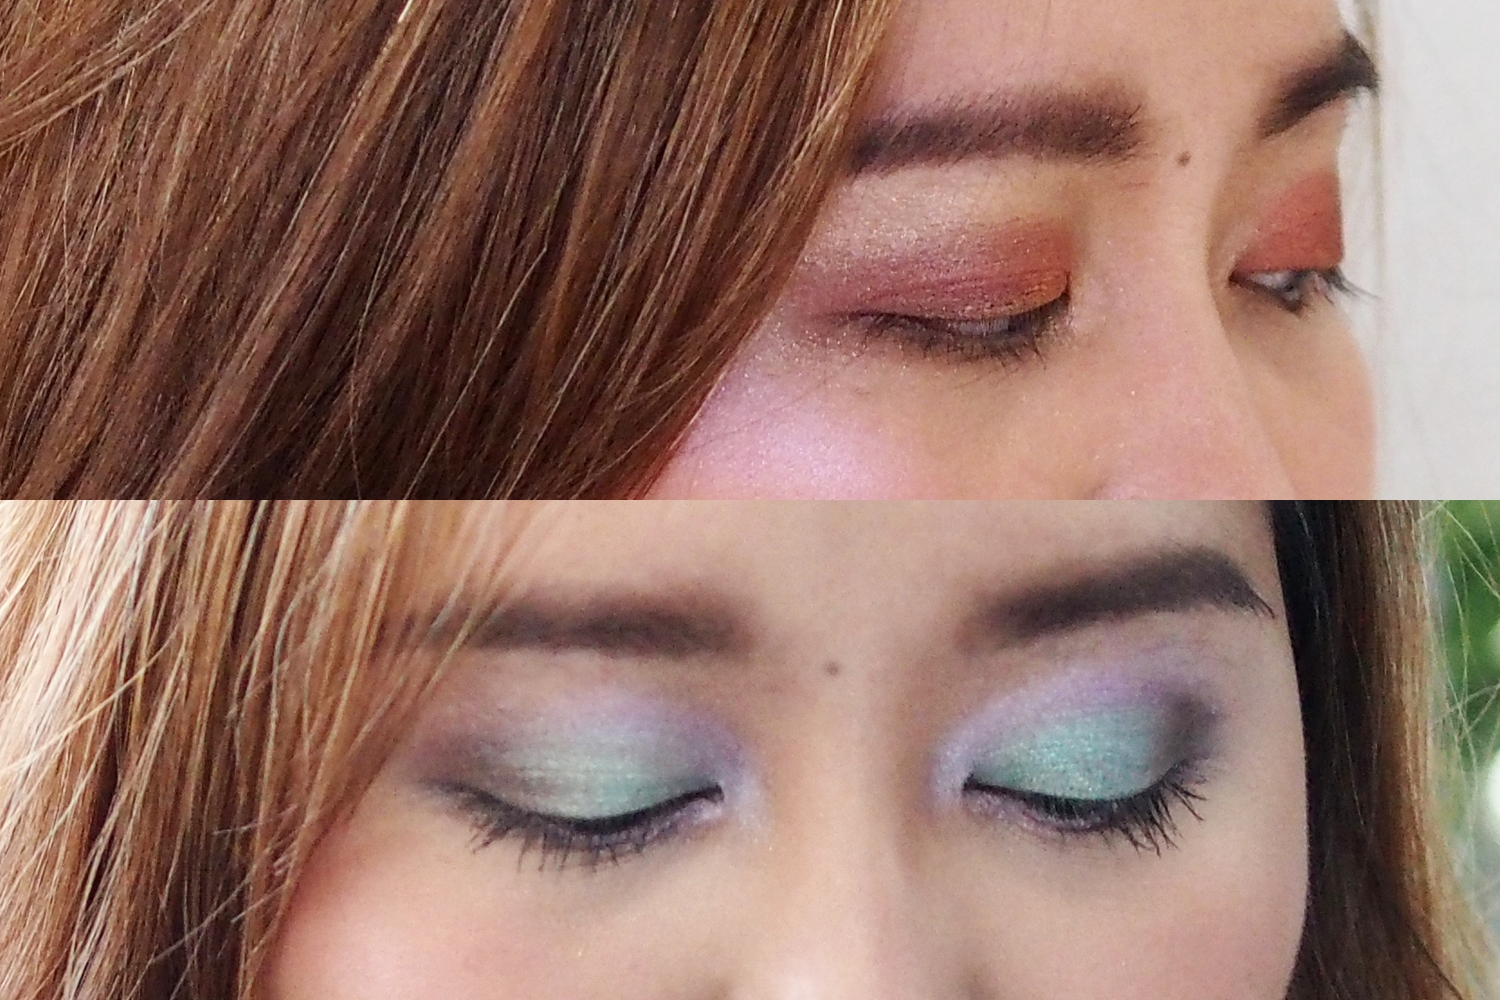 Top: Calypso Eyeshadow Palette with the Pink Highlighter from the Bronzer and Highlight Palette (photo taken in Indoor lighting)  Bottom: Luna Eyeshadow Palette with Vermillion Lip & Cheek Tint (photo taken Outdoors)